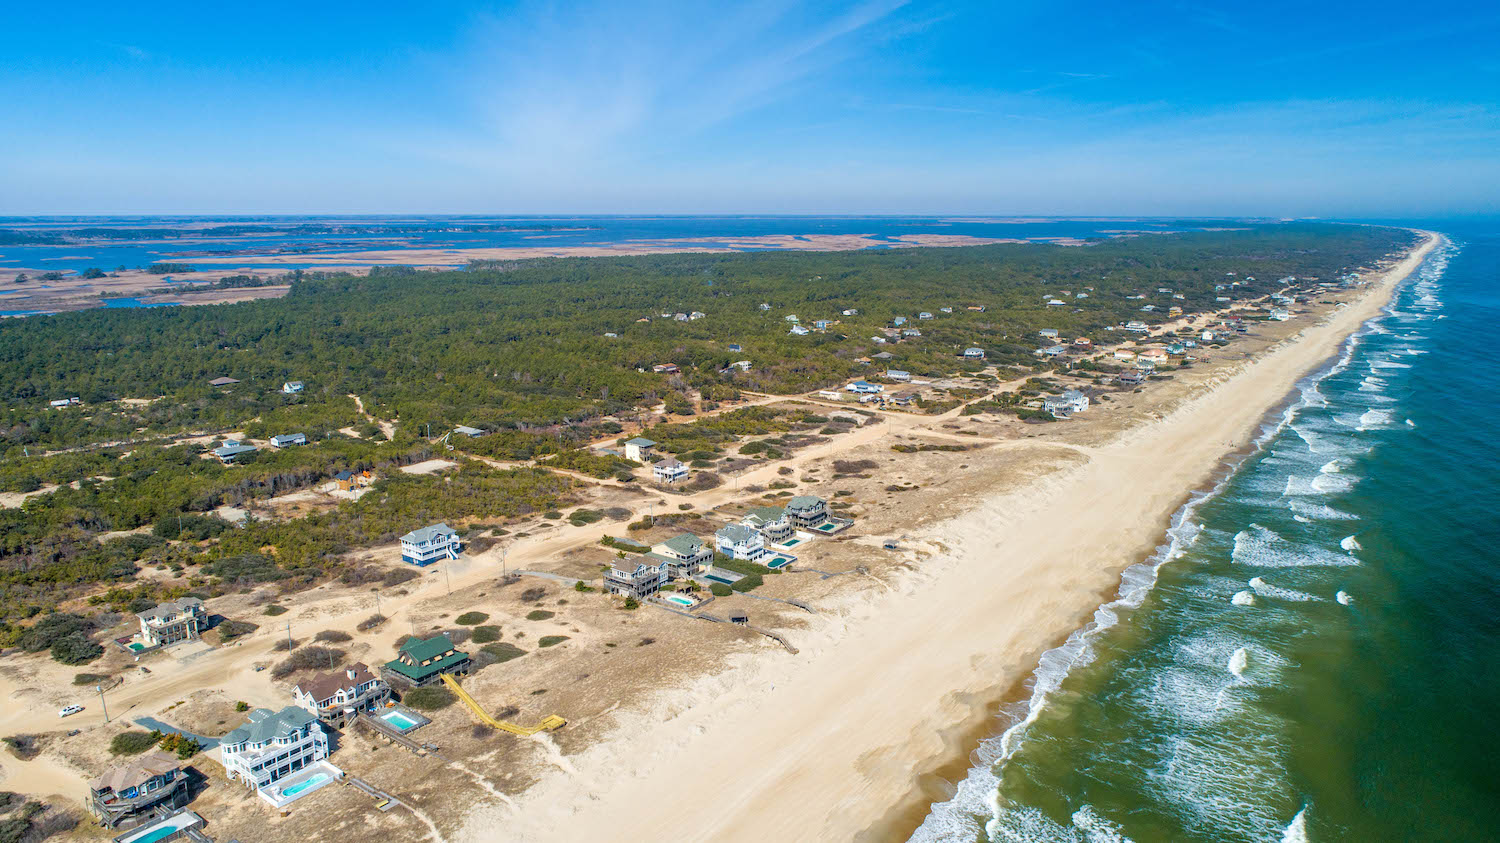 Plan your 2021 OBX Beach Vacation today!